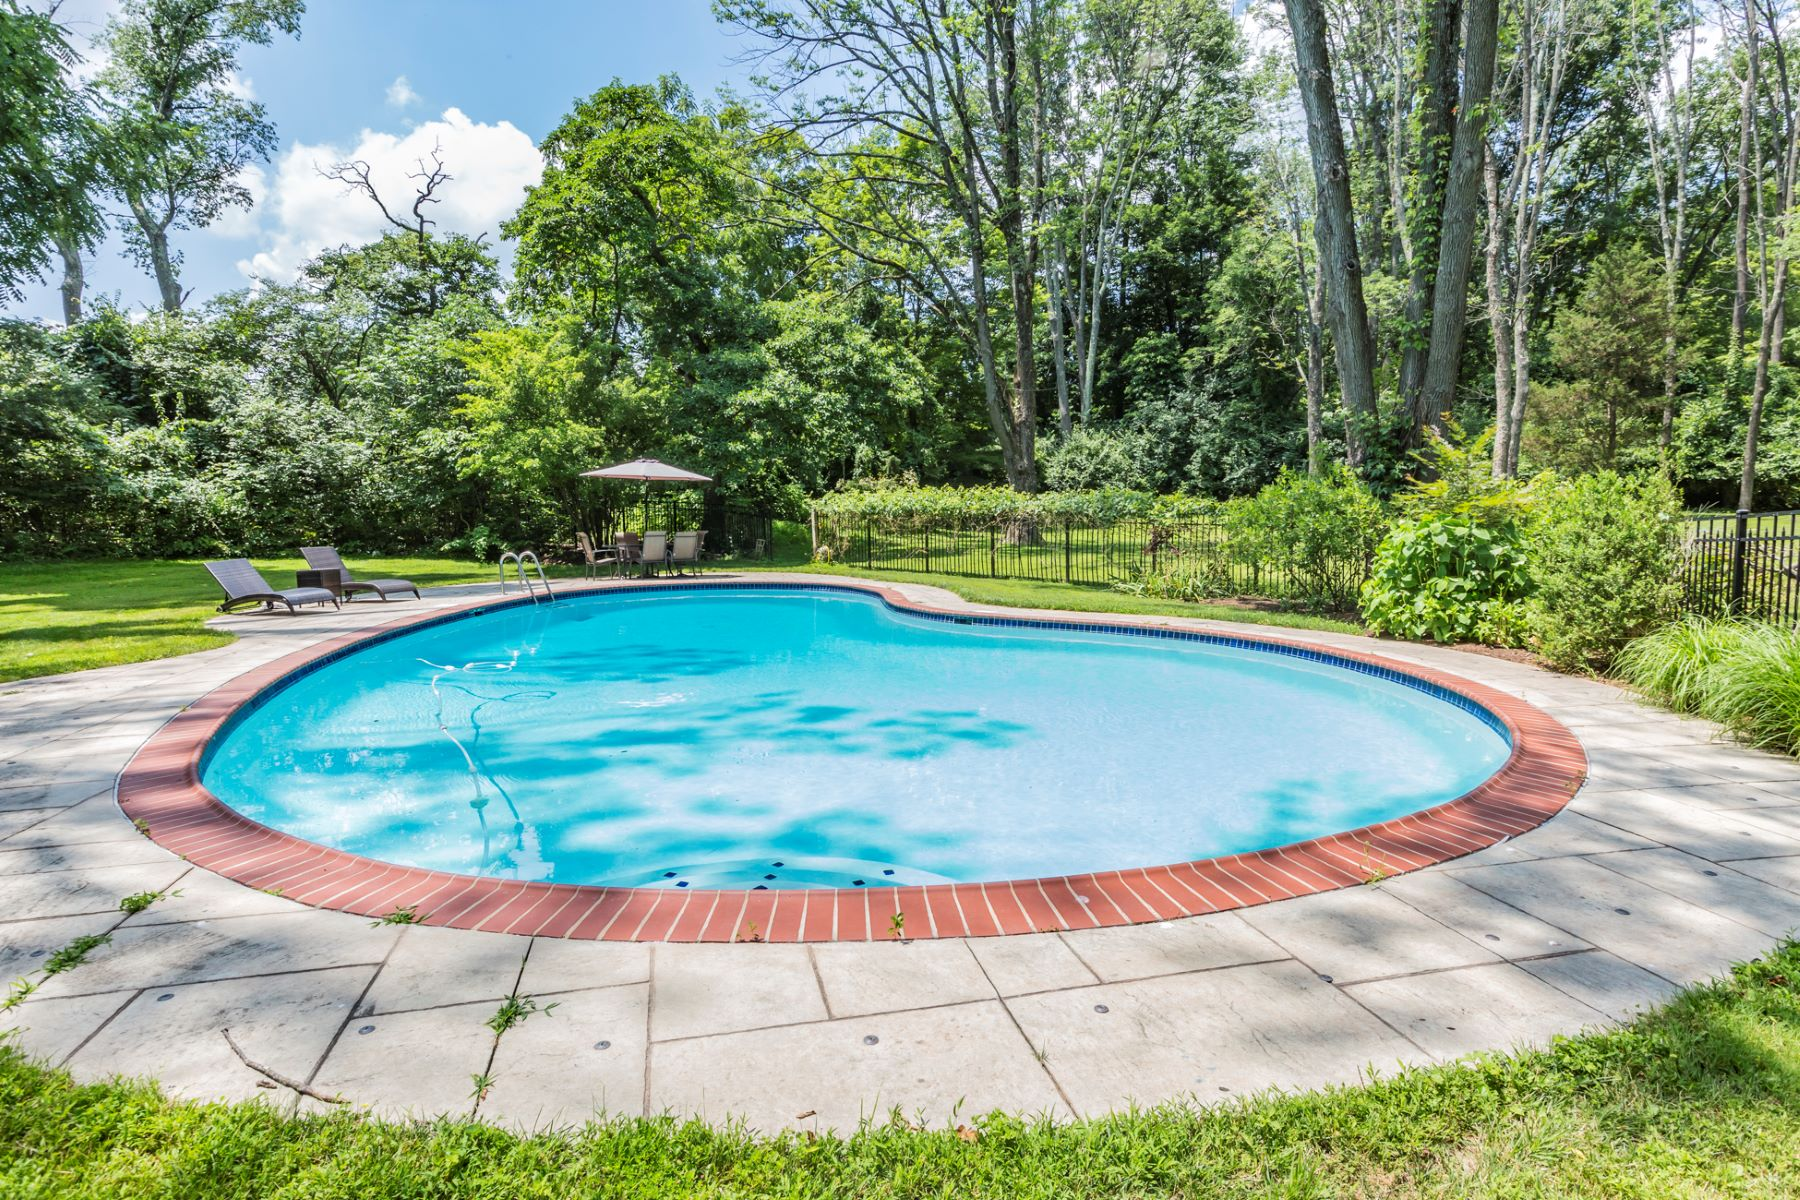 Additional photo for property listing at Spacious Residence in Lovely Two-Acre Setting 148 Fairway Drive, Princeton, New Jersey 08540 United States